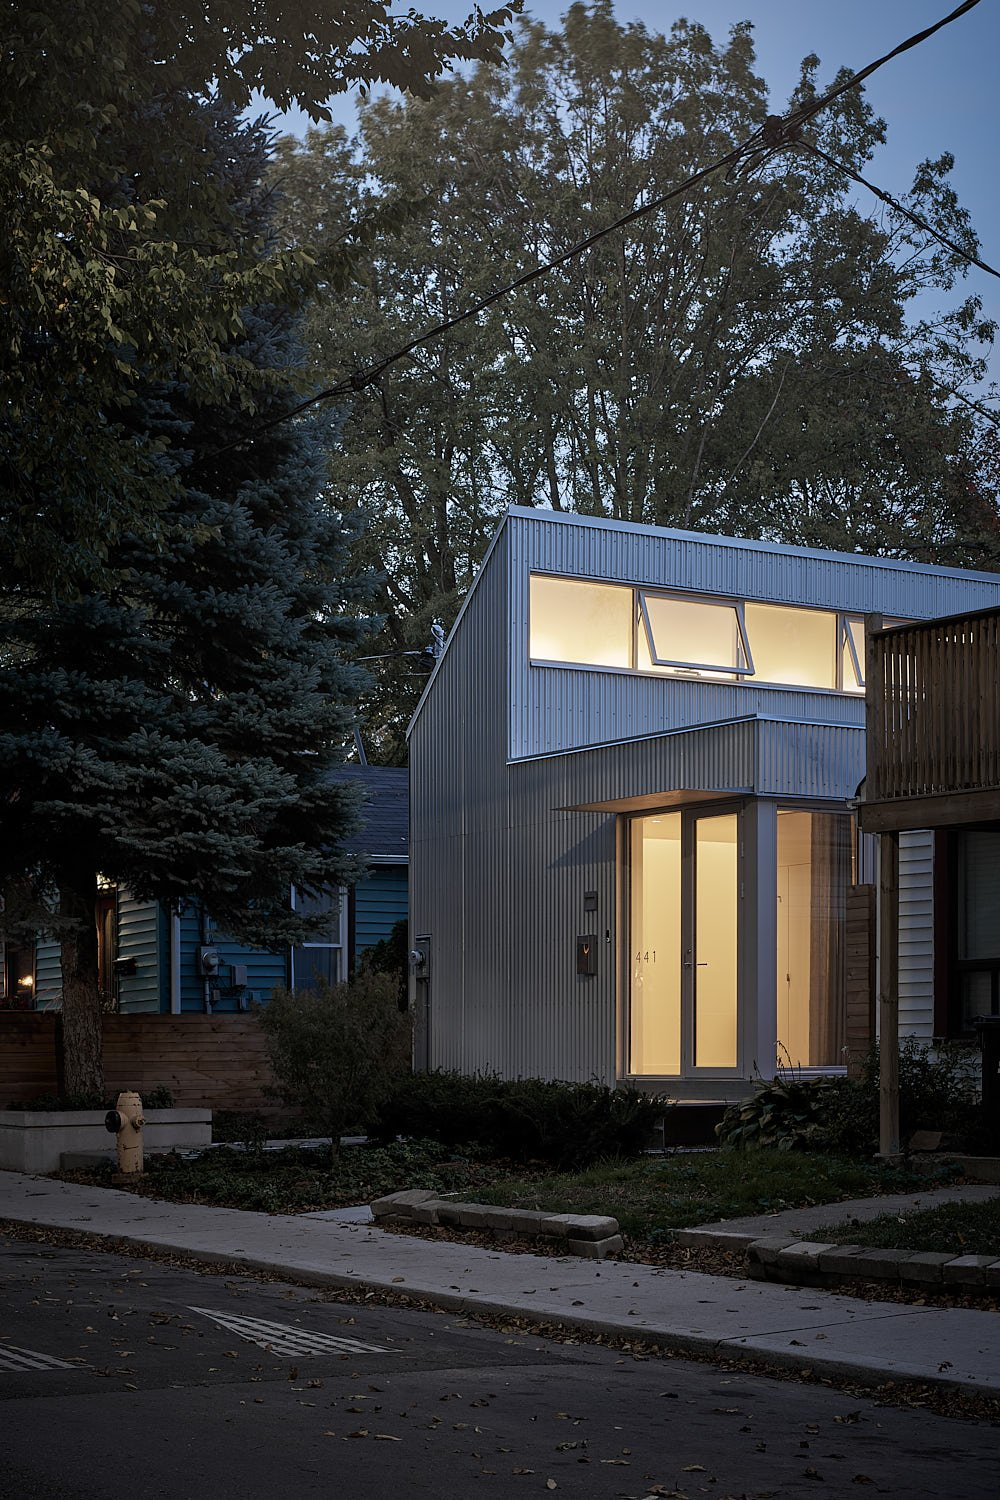 Craven Road Micro House by Anya Moryoussef Architect